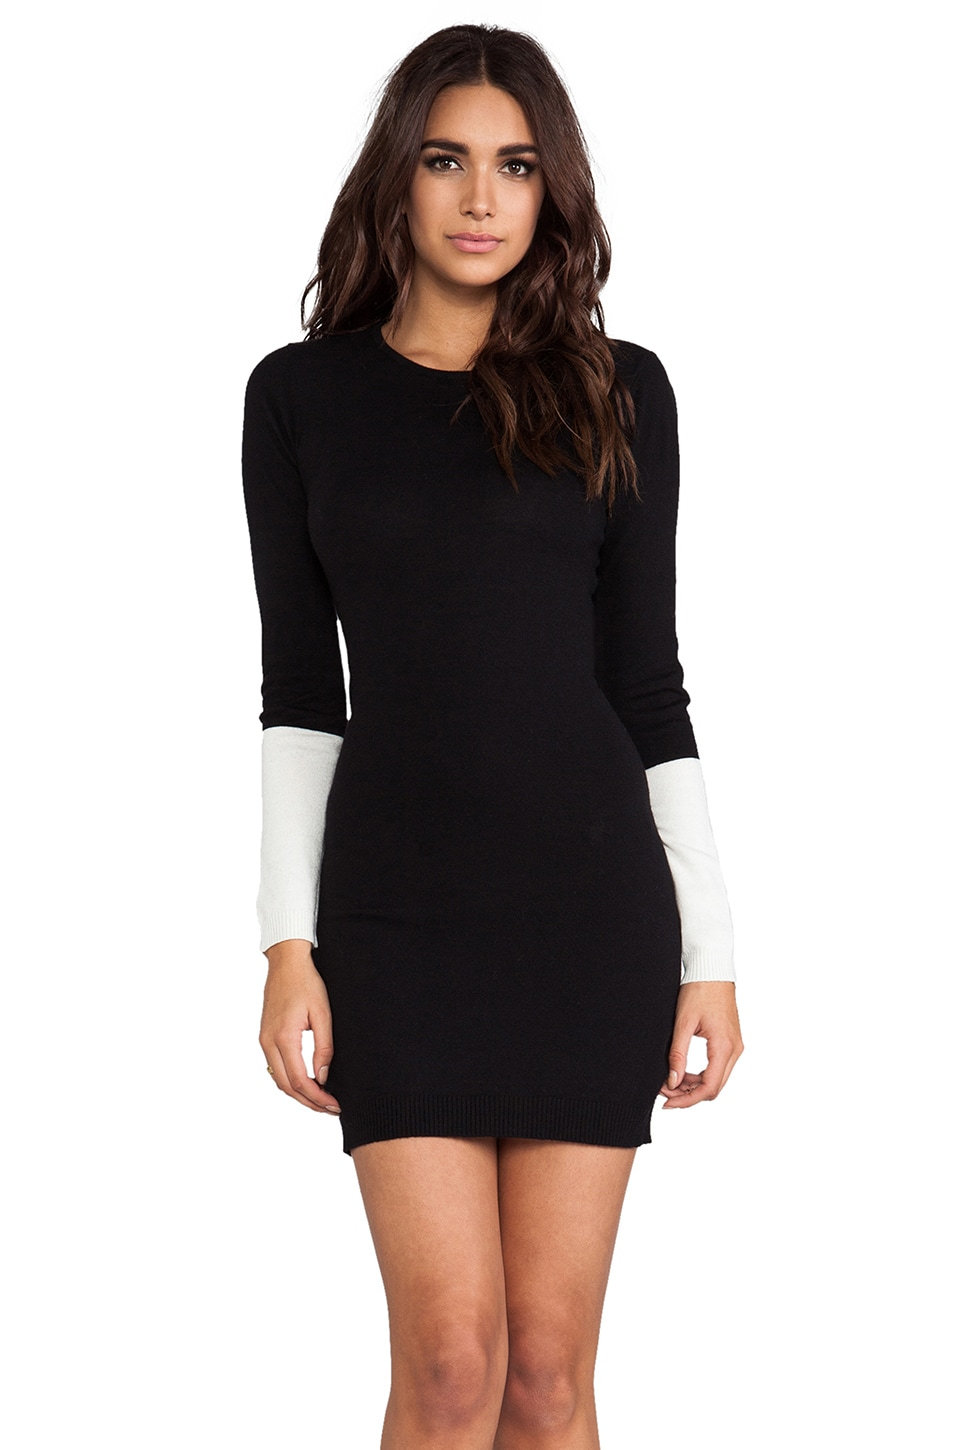 Central Park West Kingsport Sweaterdress in Black